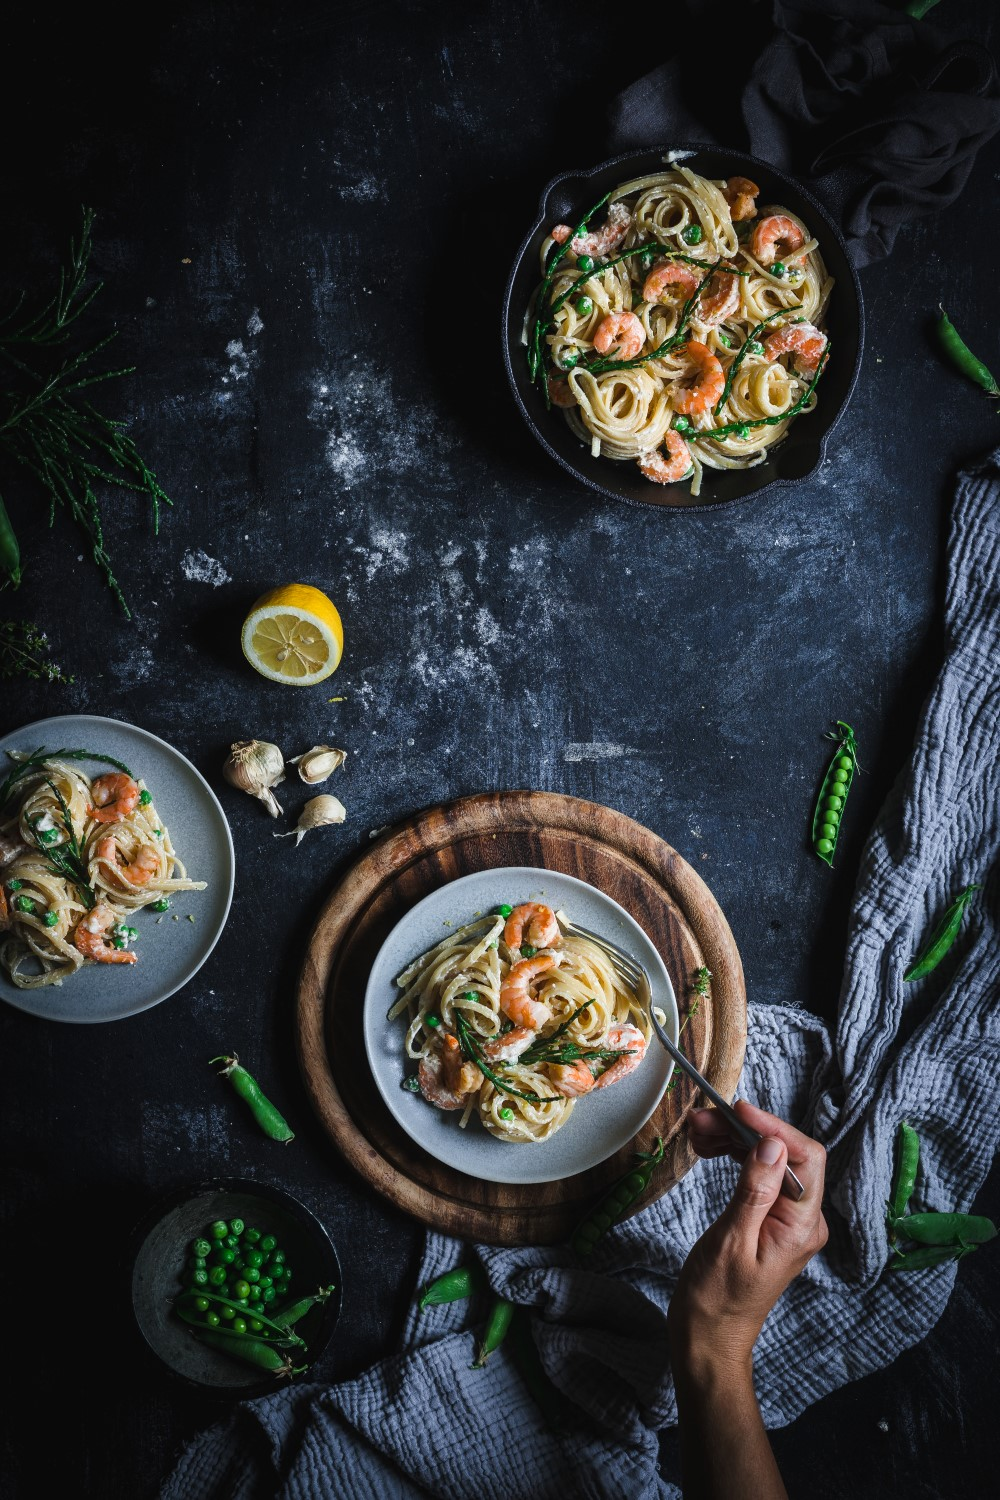 This quick and rich garlic ricotta shrimp pasta is incredibly creamy and luxurious and has a lovely sour and salty flavor from lemon and glasswort (sea asparagus).